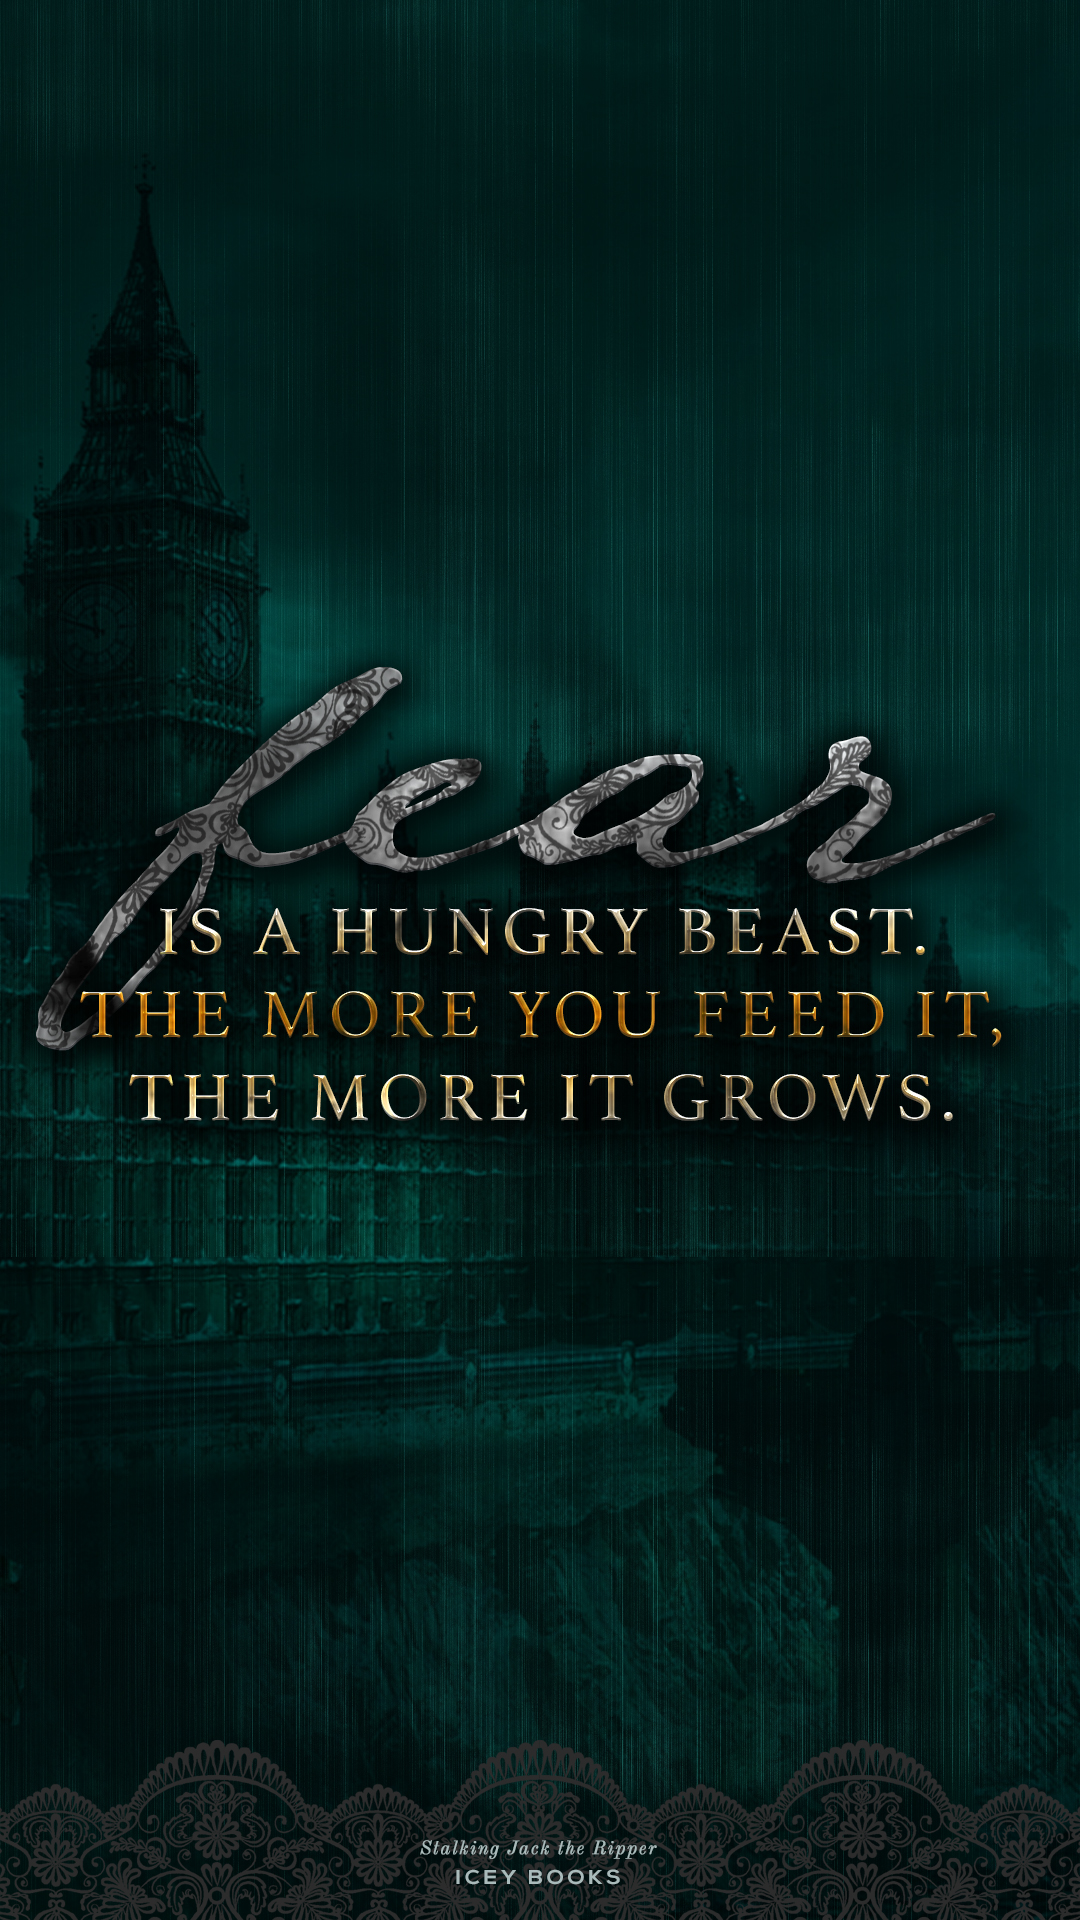 Quote Candy 63 Download A Wallpaper For STALKING JACK